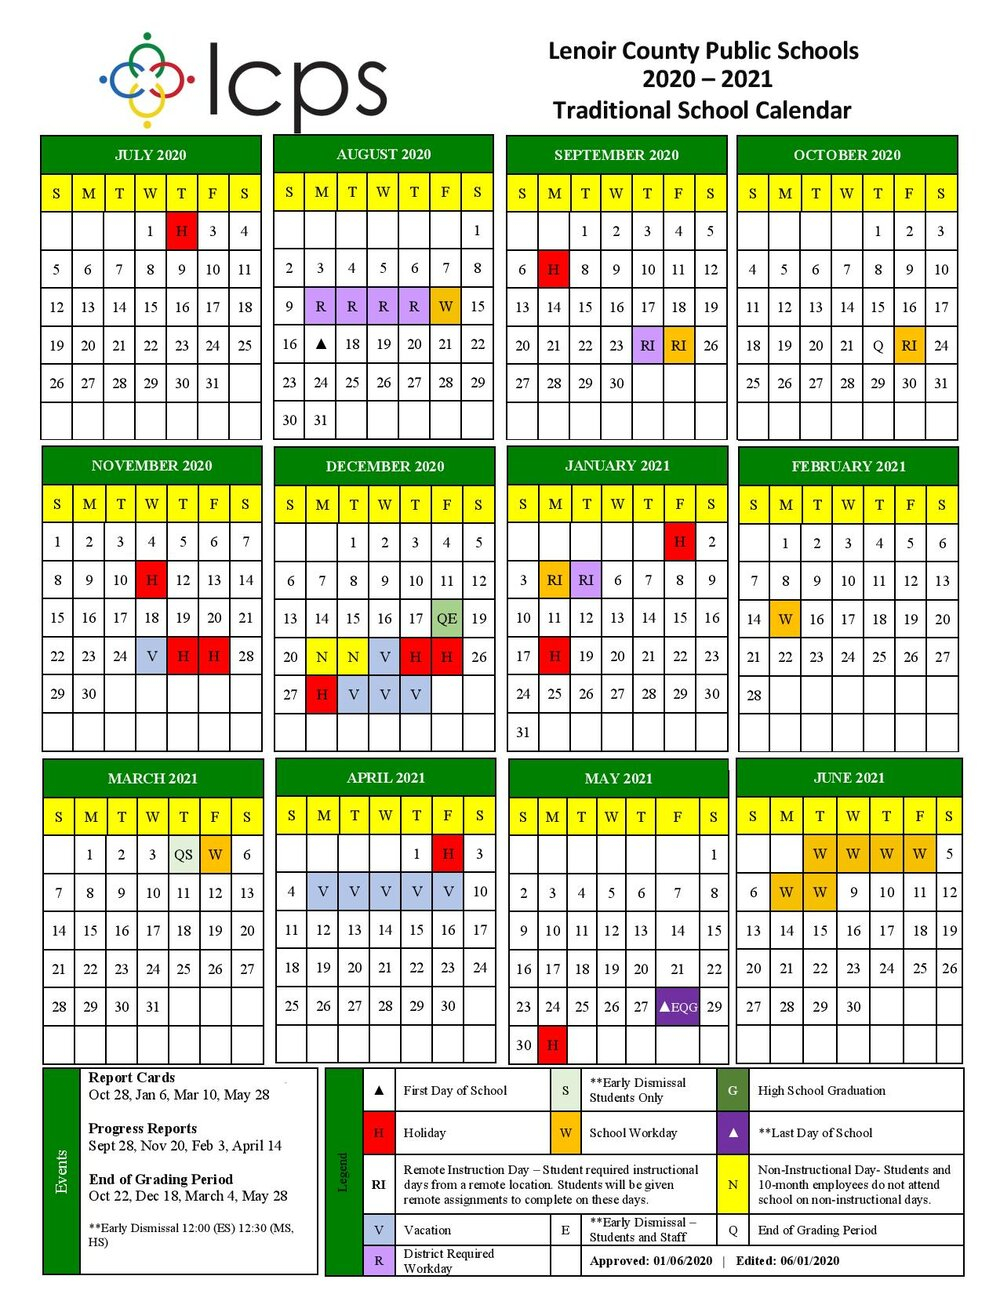 Lenoir County Public Schools Releases The Revised 2020 Intended For Board Of Education Calendar 2021 2020 Bibb County